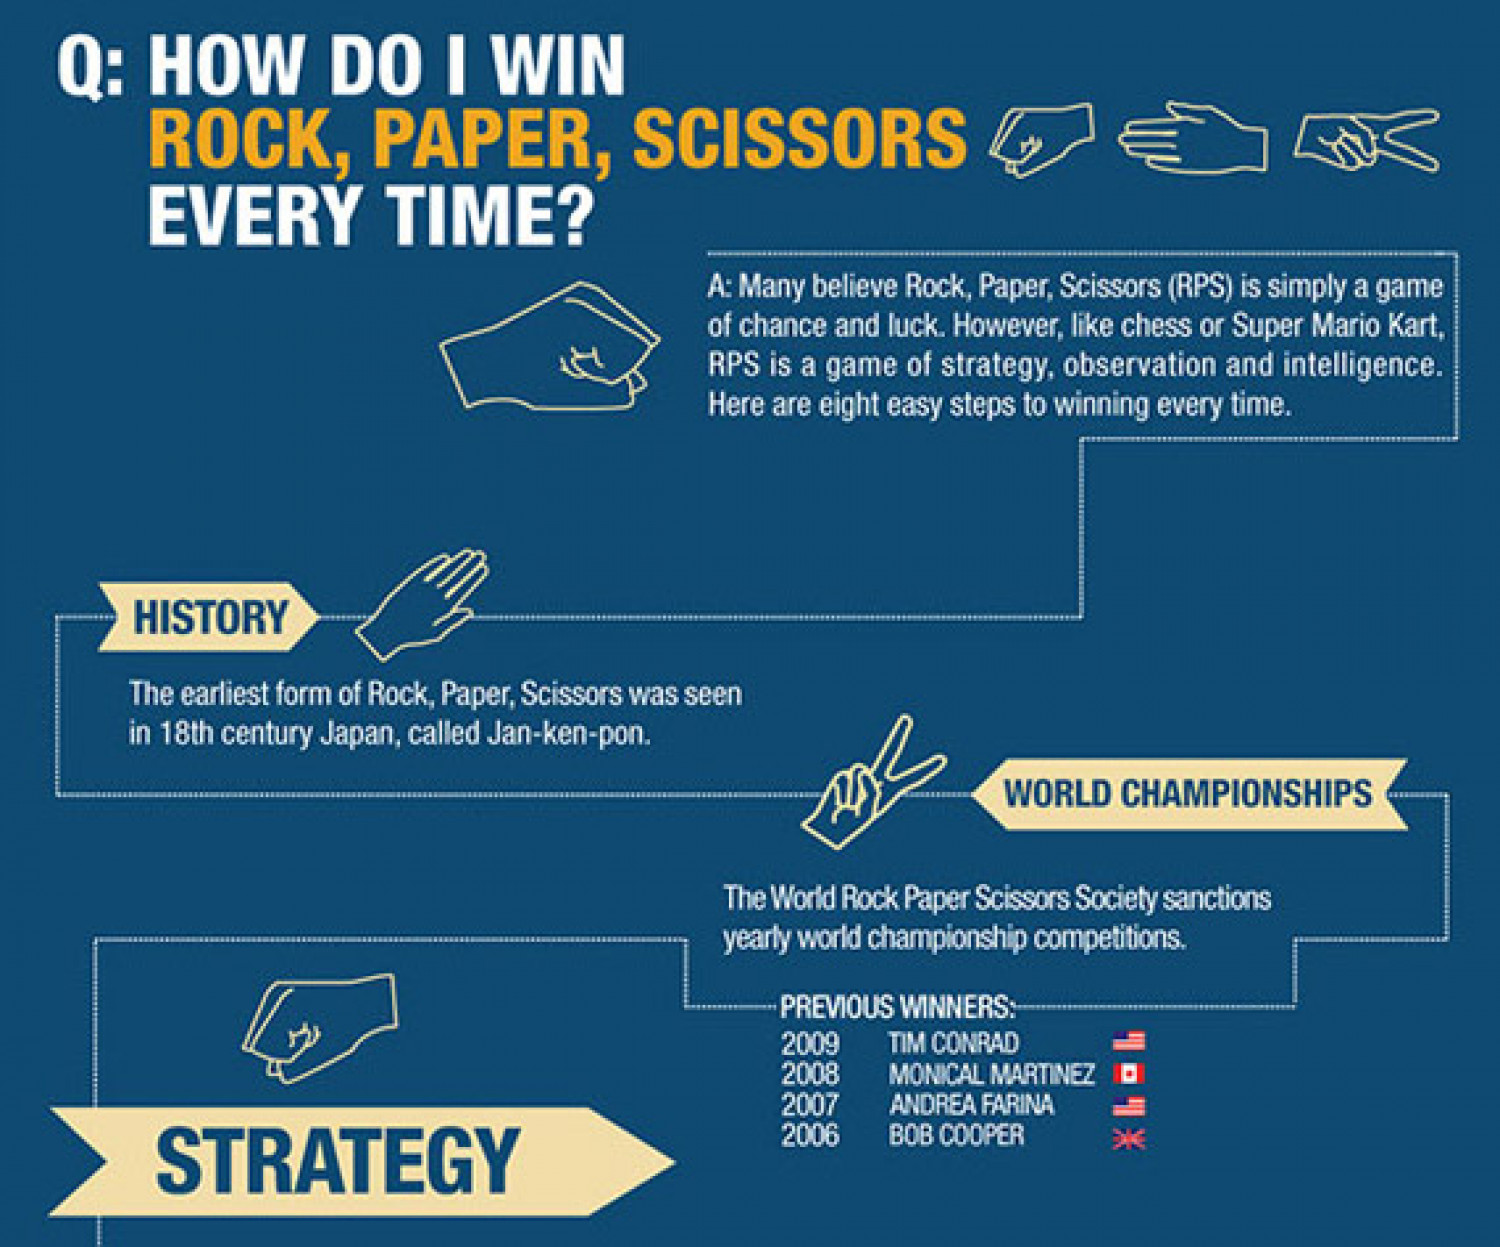 How Do I Win Rock, Paper, Scissors Every Time? Infographic